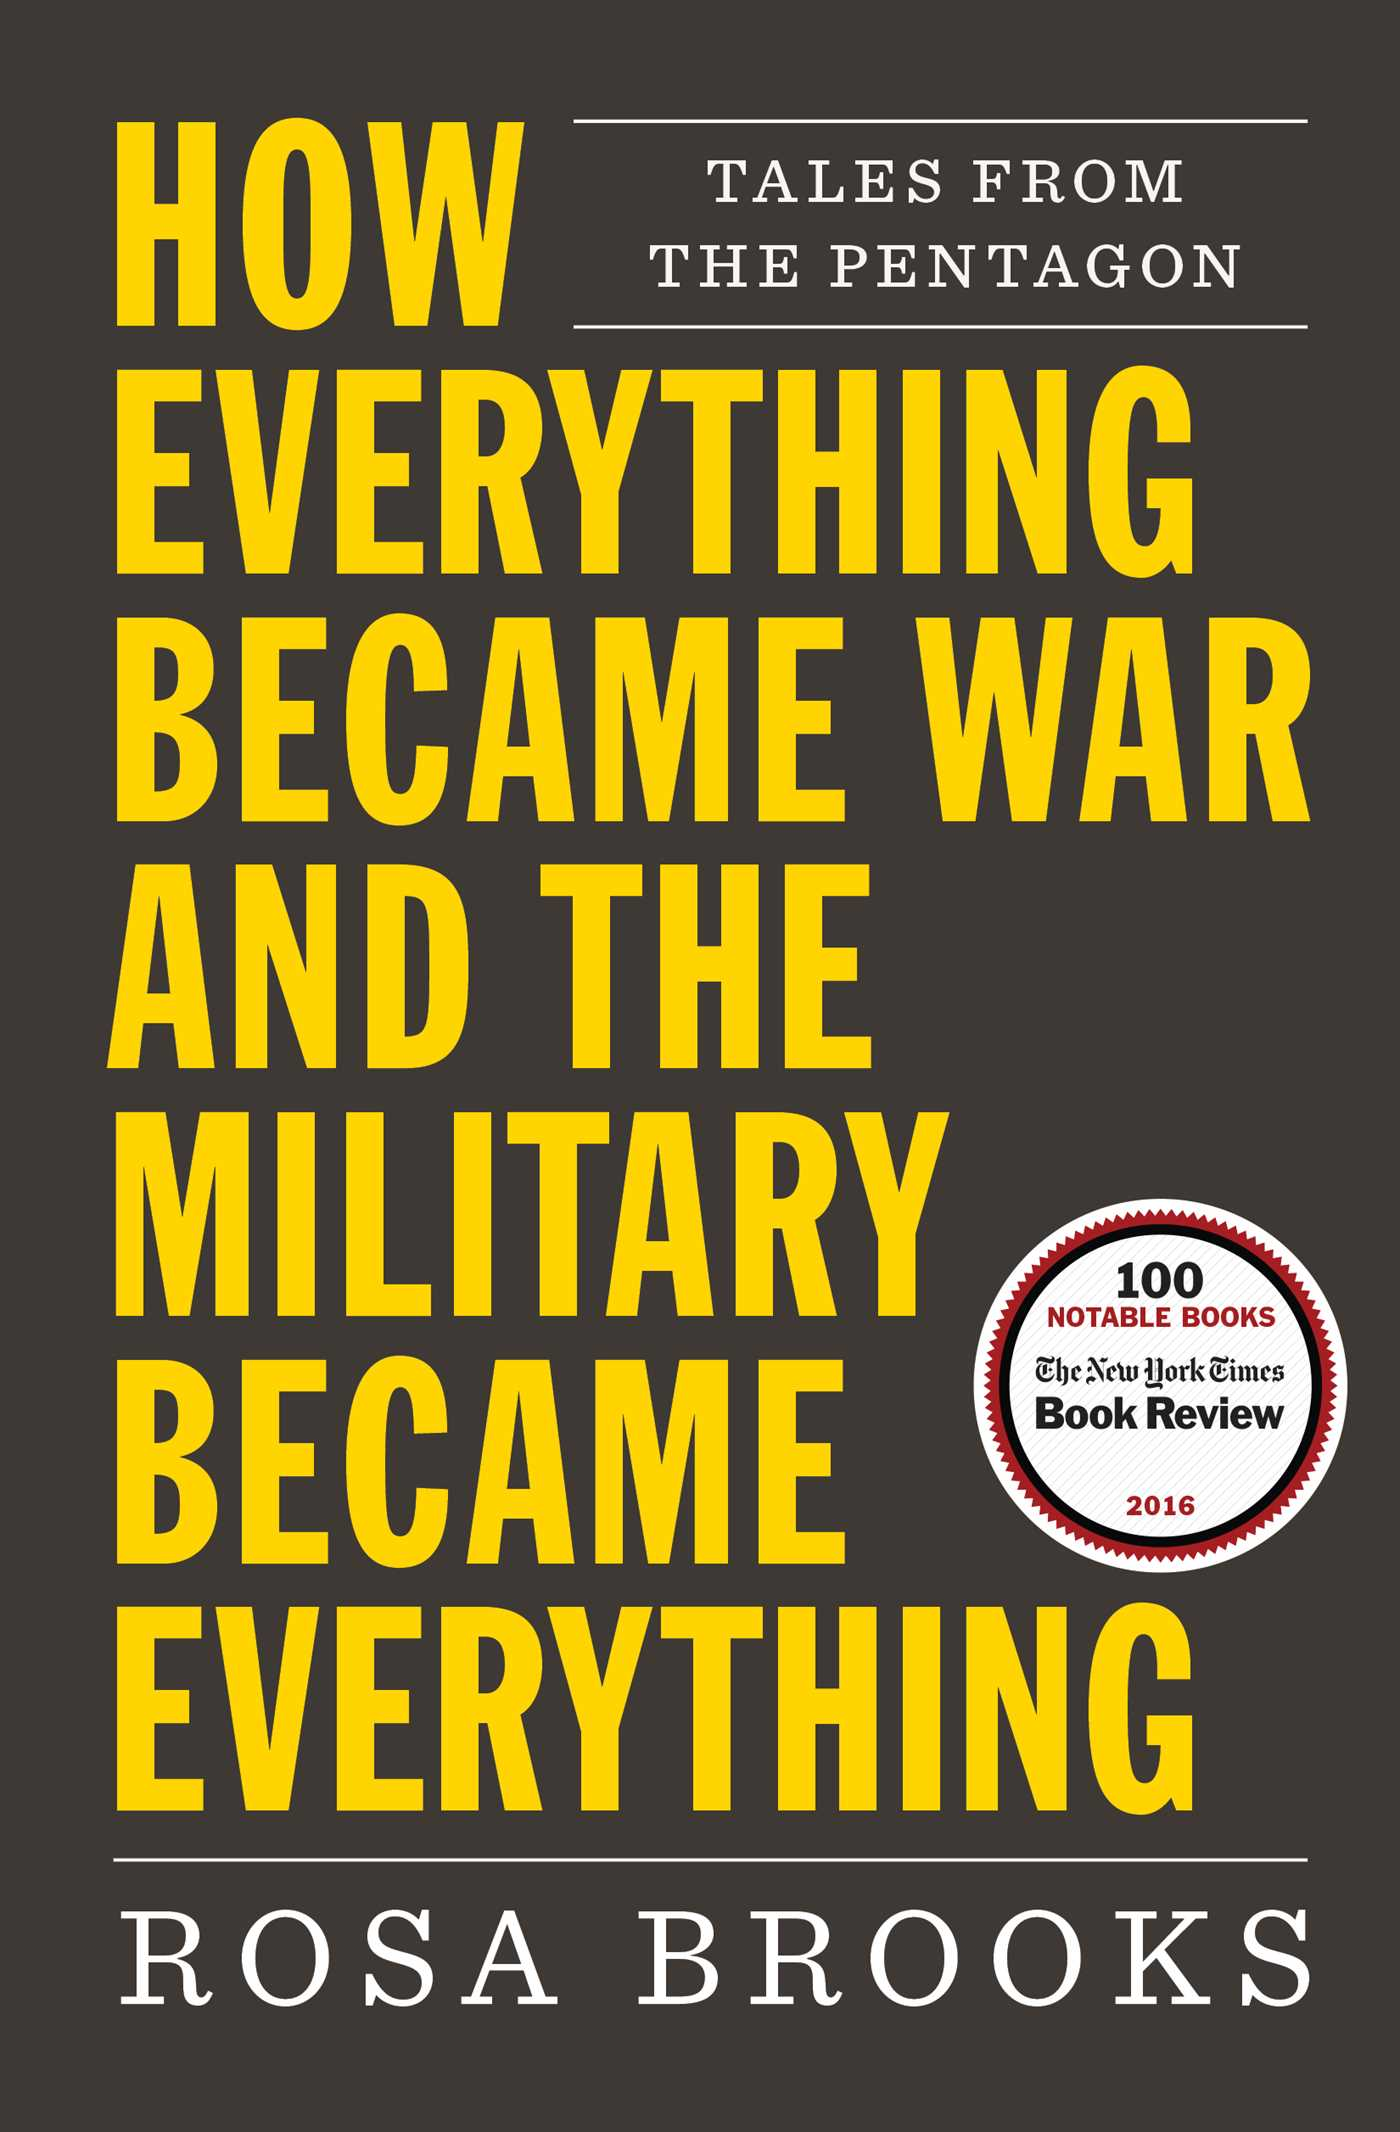 How everything became war and the military became everything 9781476777887 hr